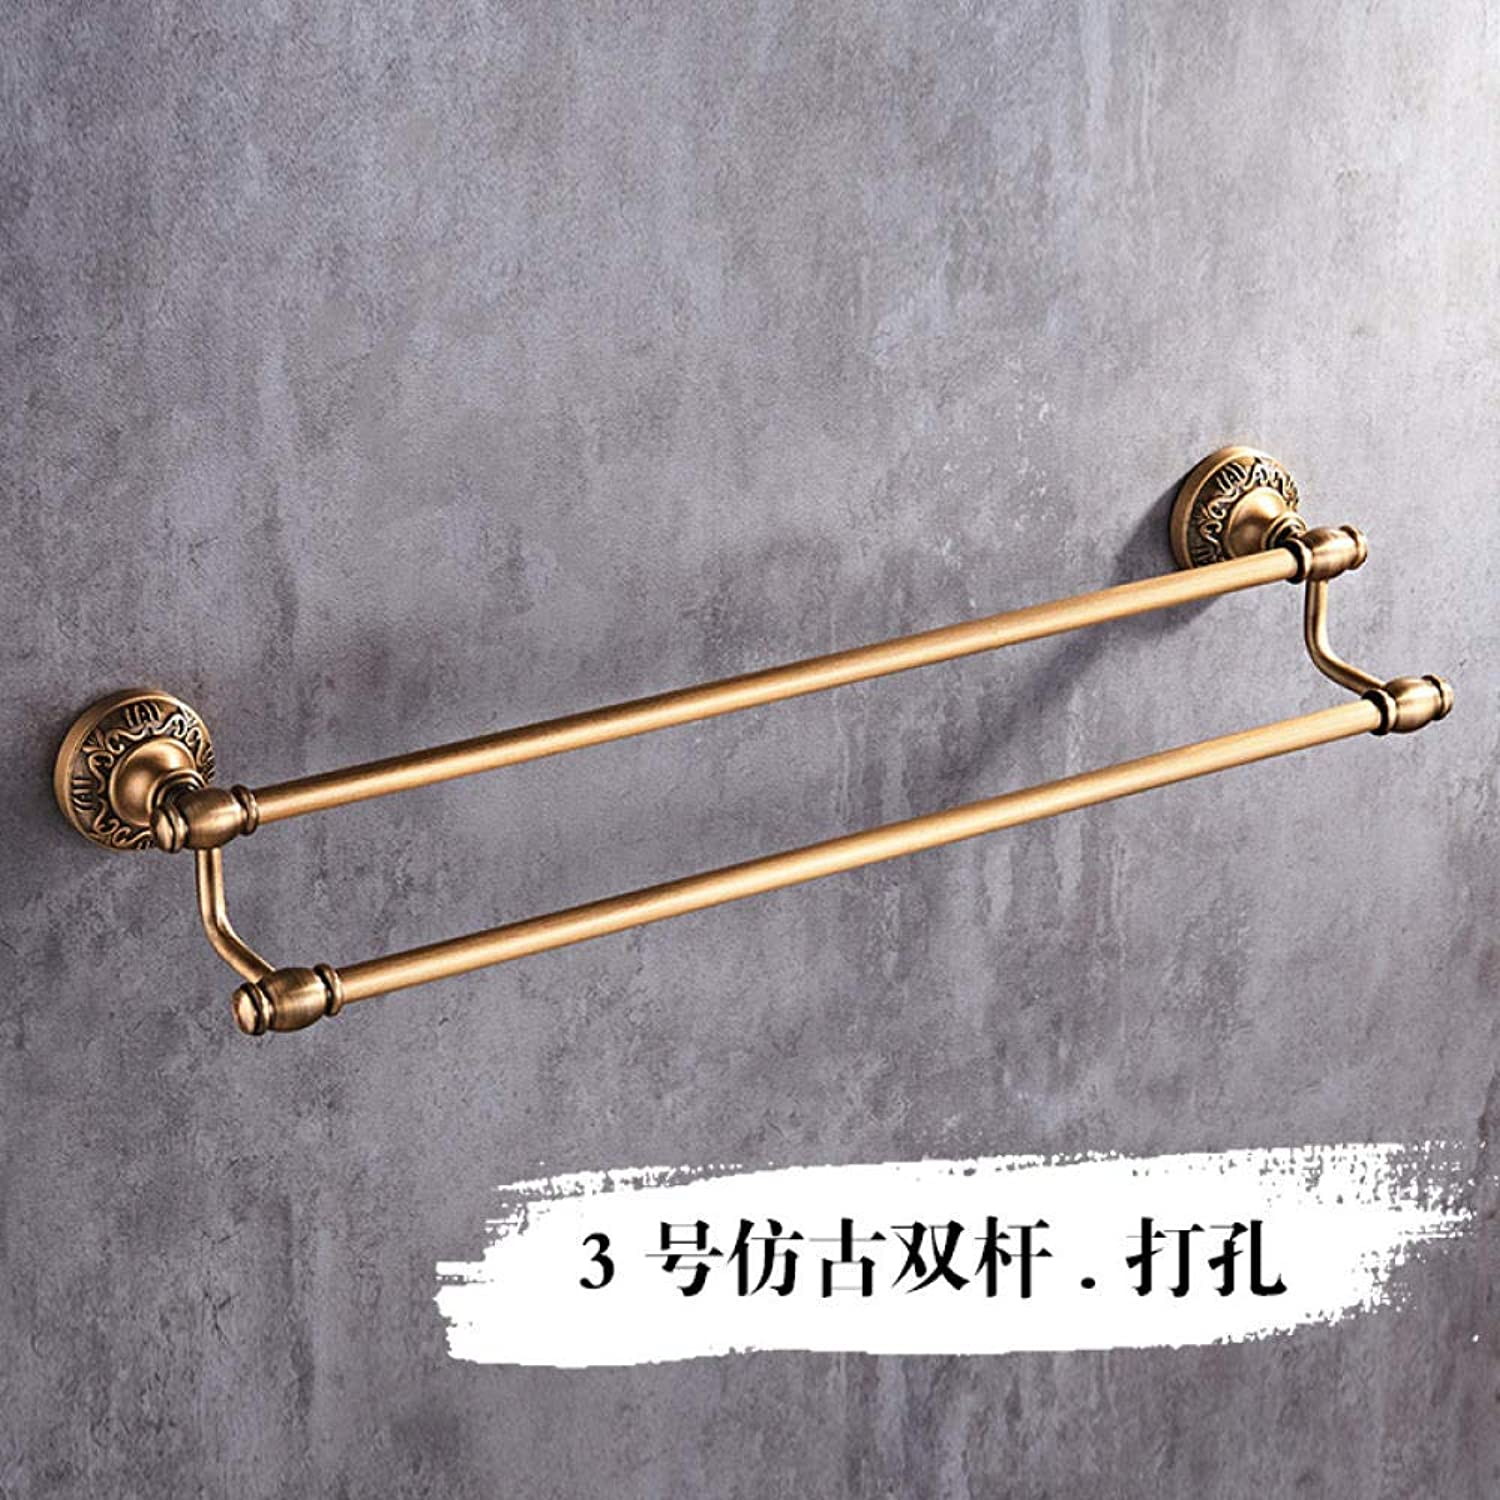 marca famosa Space Space Space aluminum towel rack towel bar European bathroom towel hanging nails No. 3 antique double rod punch  Mejor precio